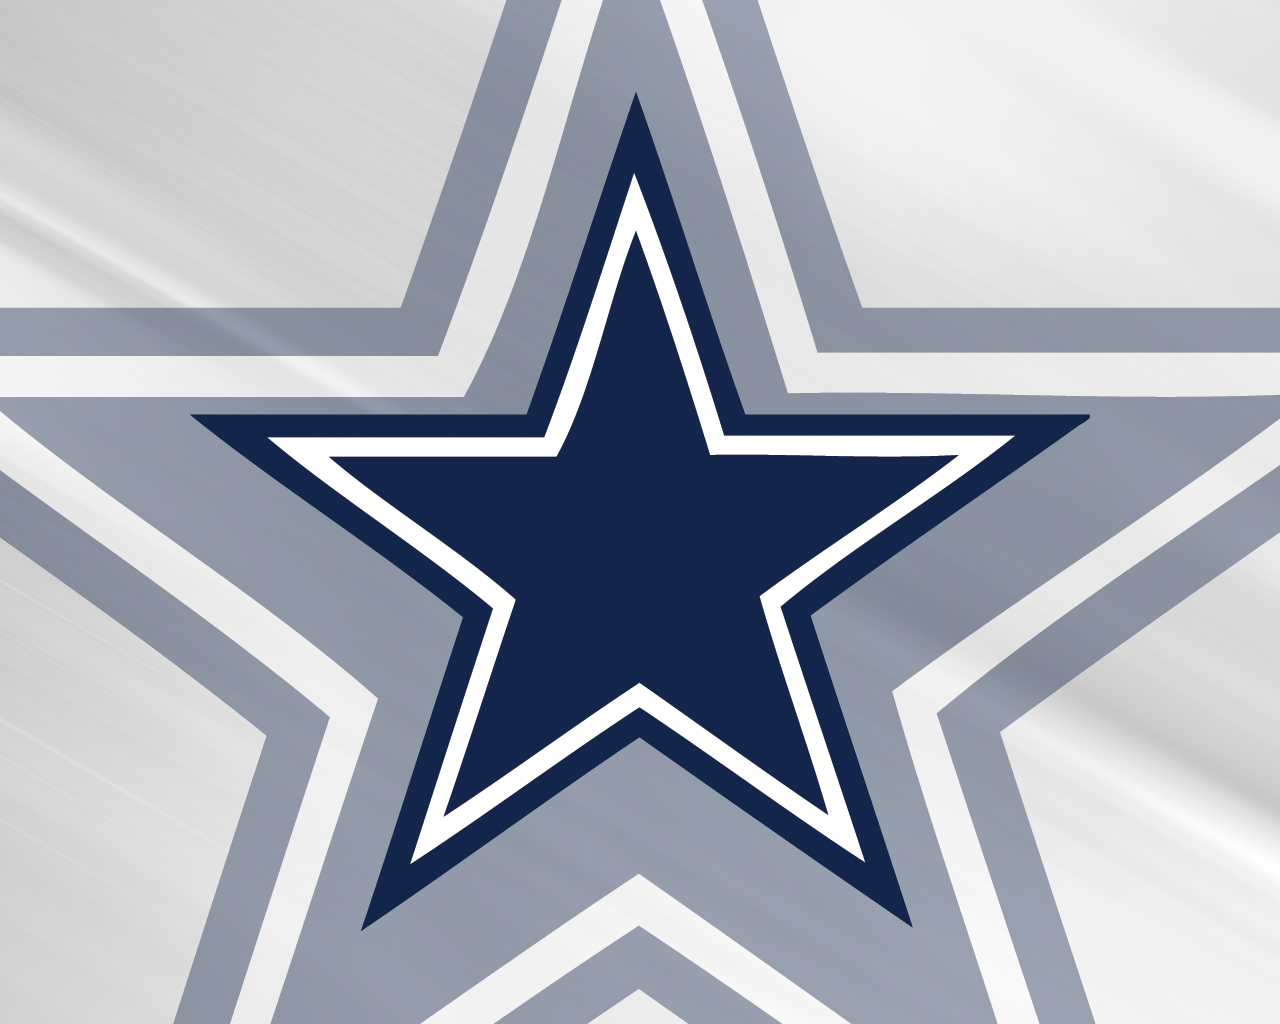 Dallas Cowboys (Record: 6-10)